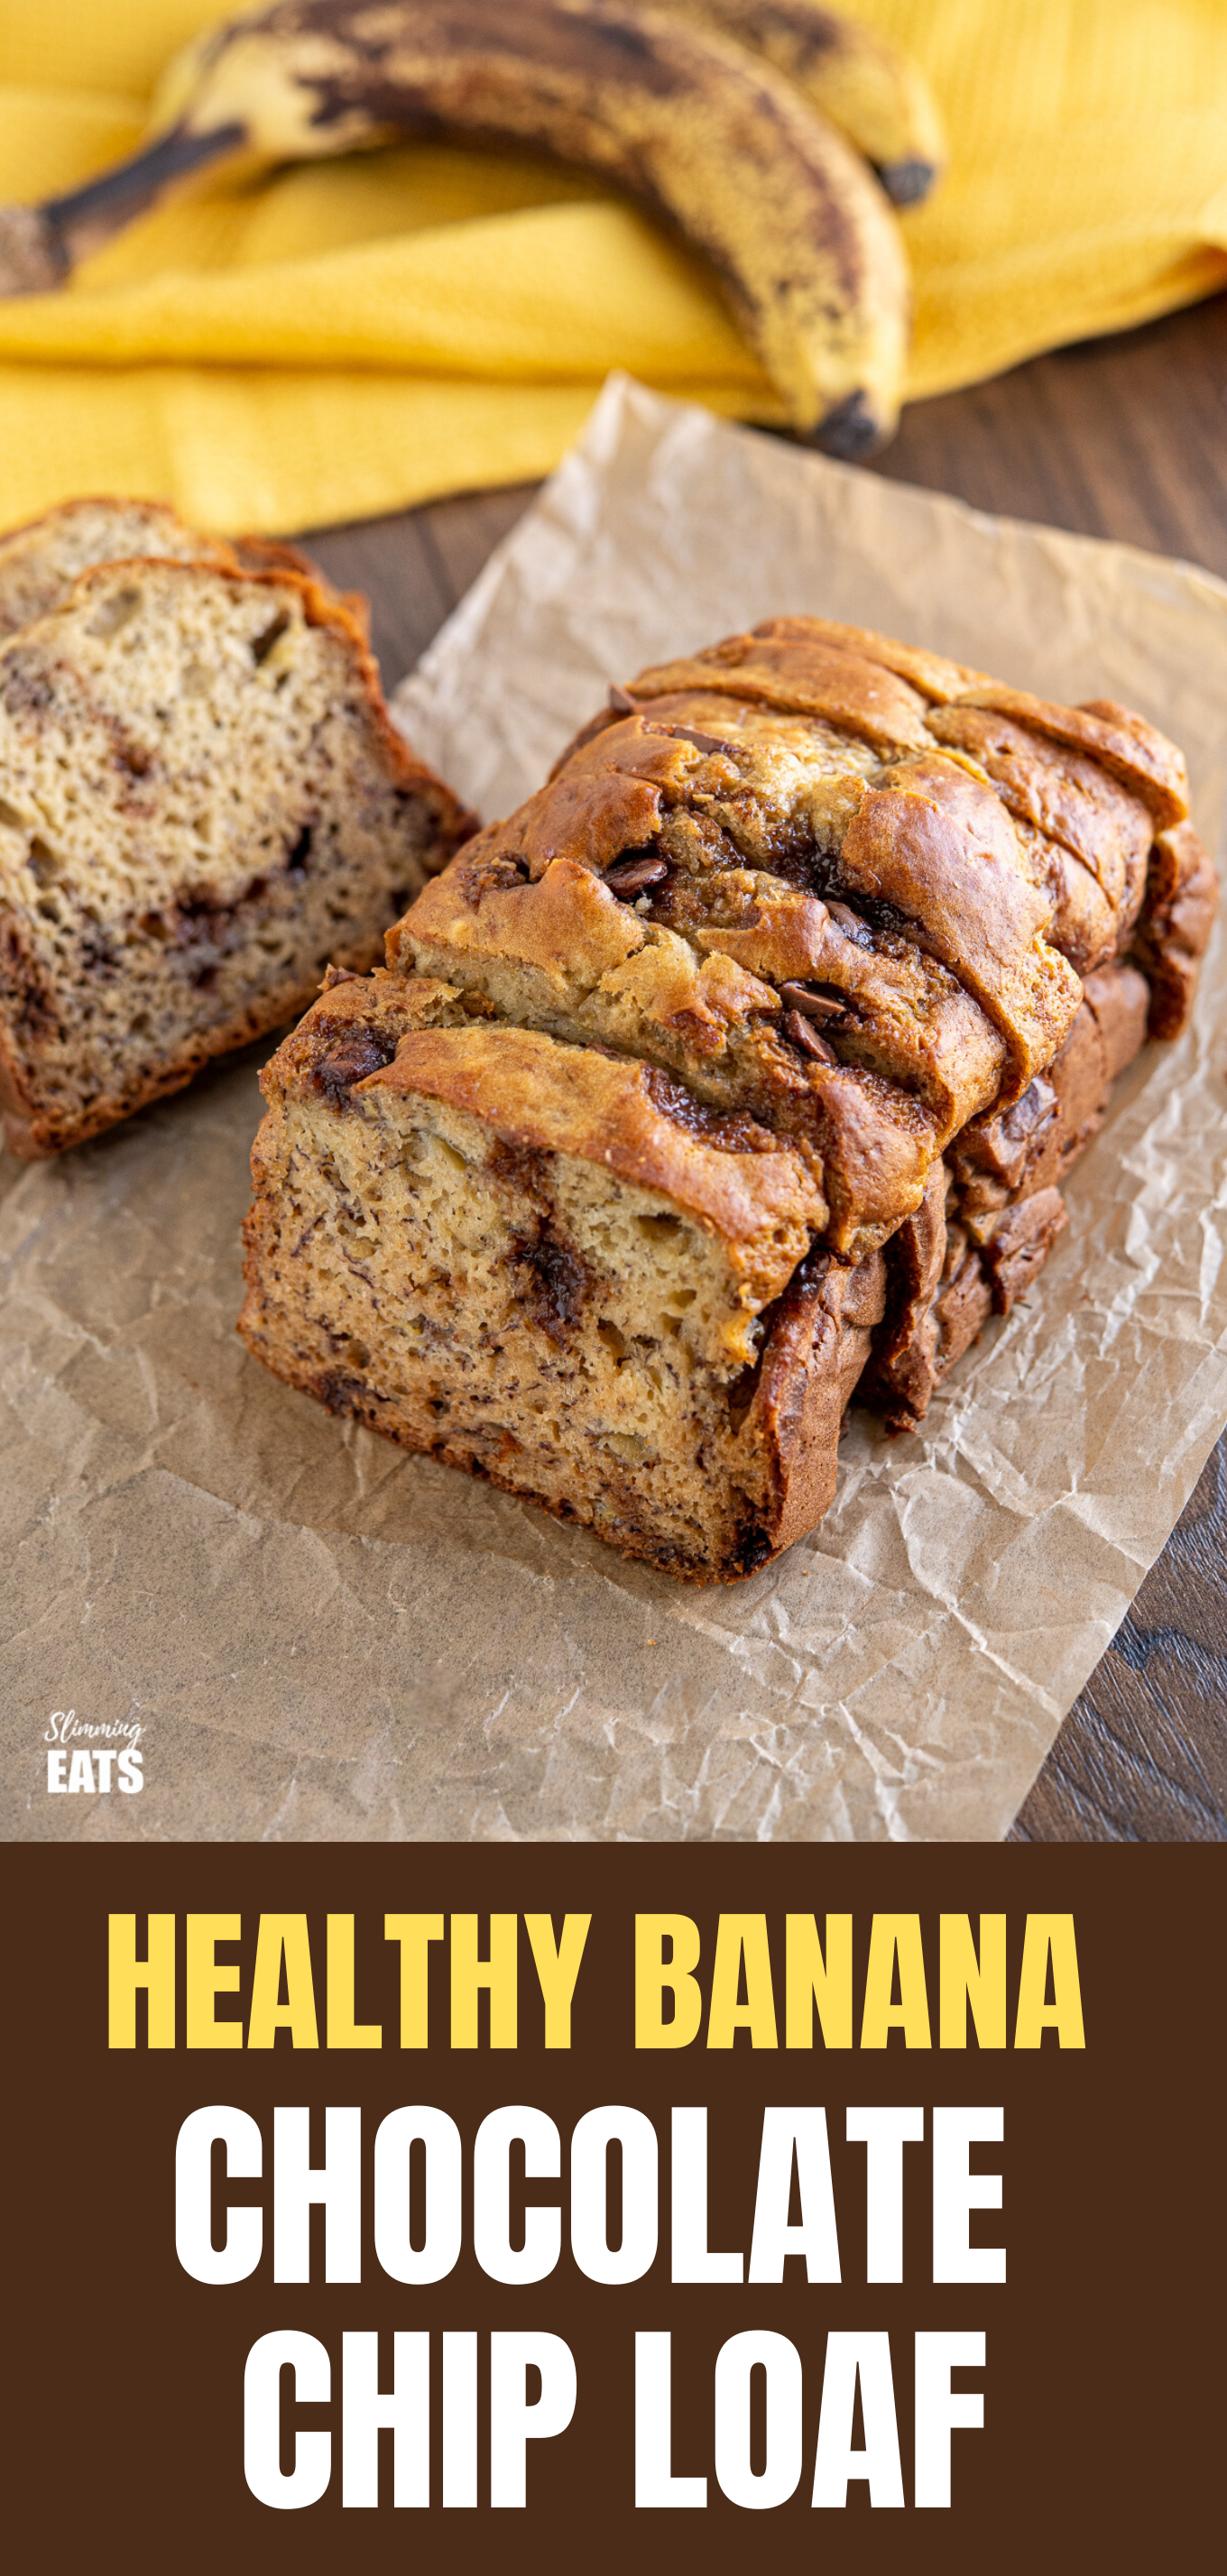 Healthy Banana and Chocolate Chip Loaf on parchment paper with ripe bananas in background on yellow tea towel feature pin